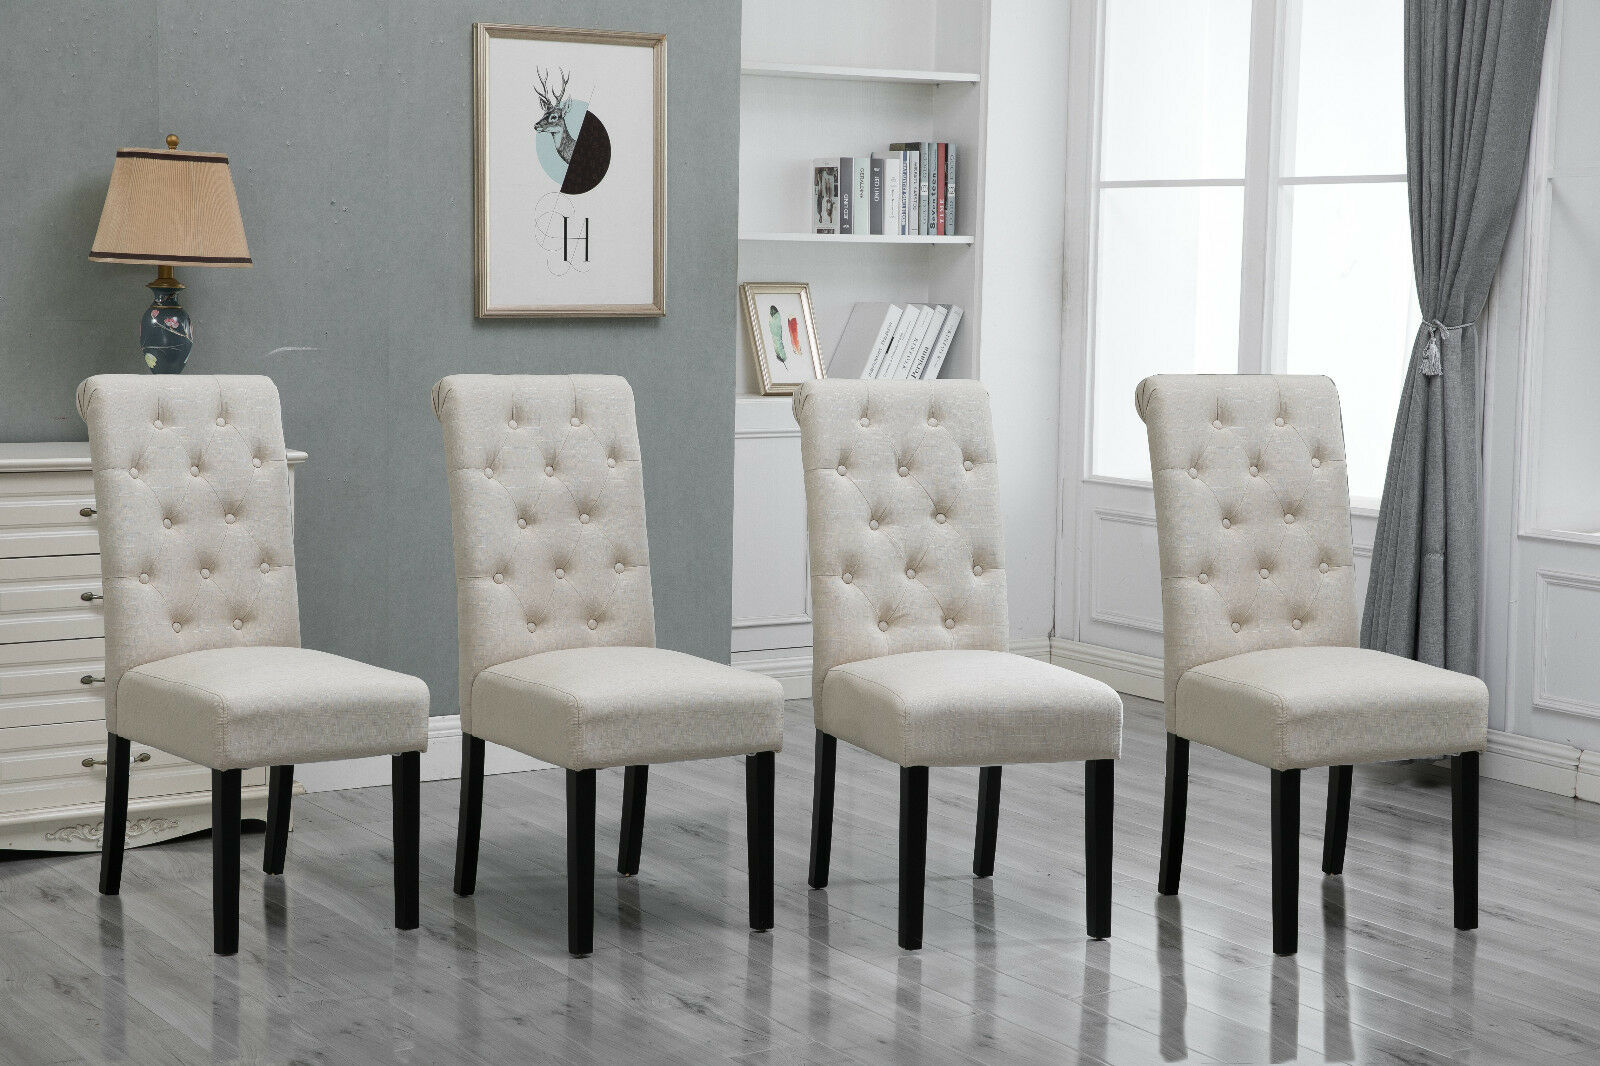 high back upholstered dining room chairs | 4x Beige Dining Chairs High Back Fabric Upholstered Button ...